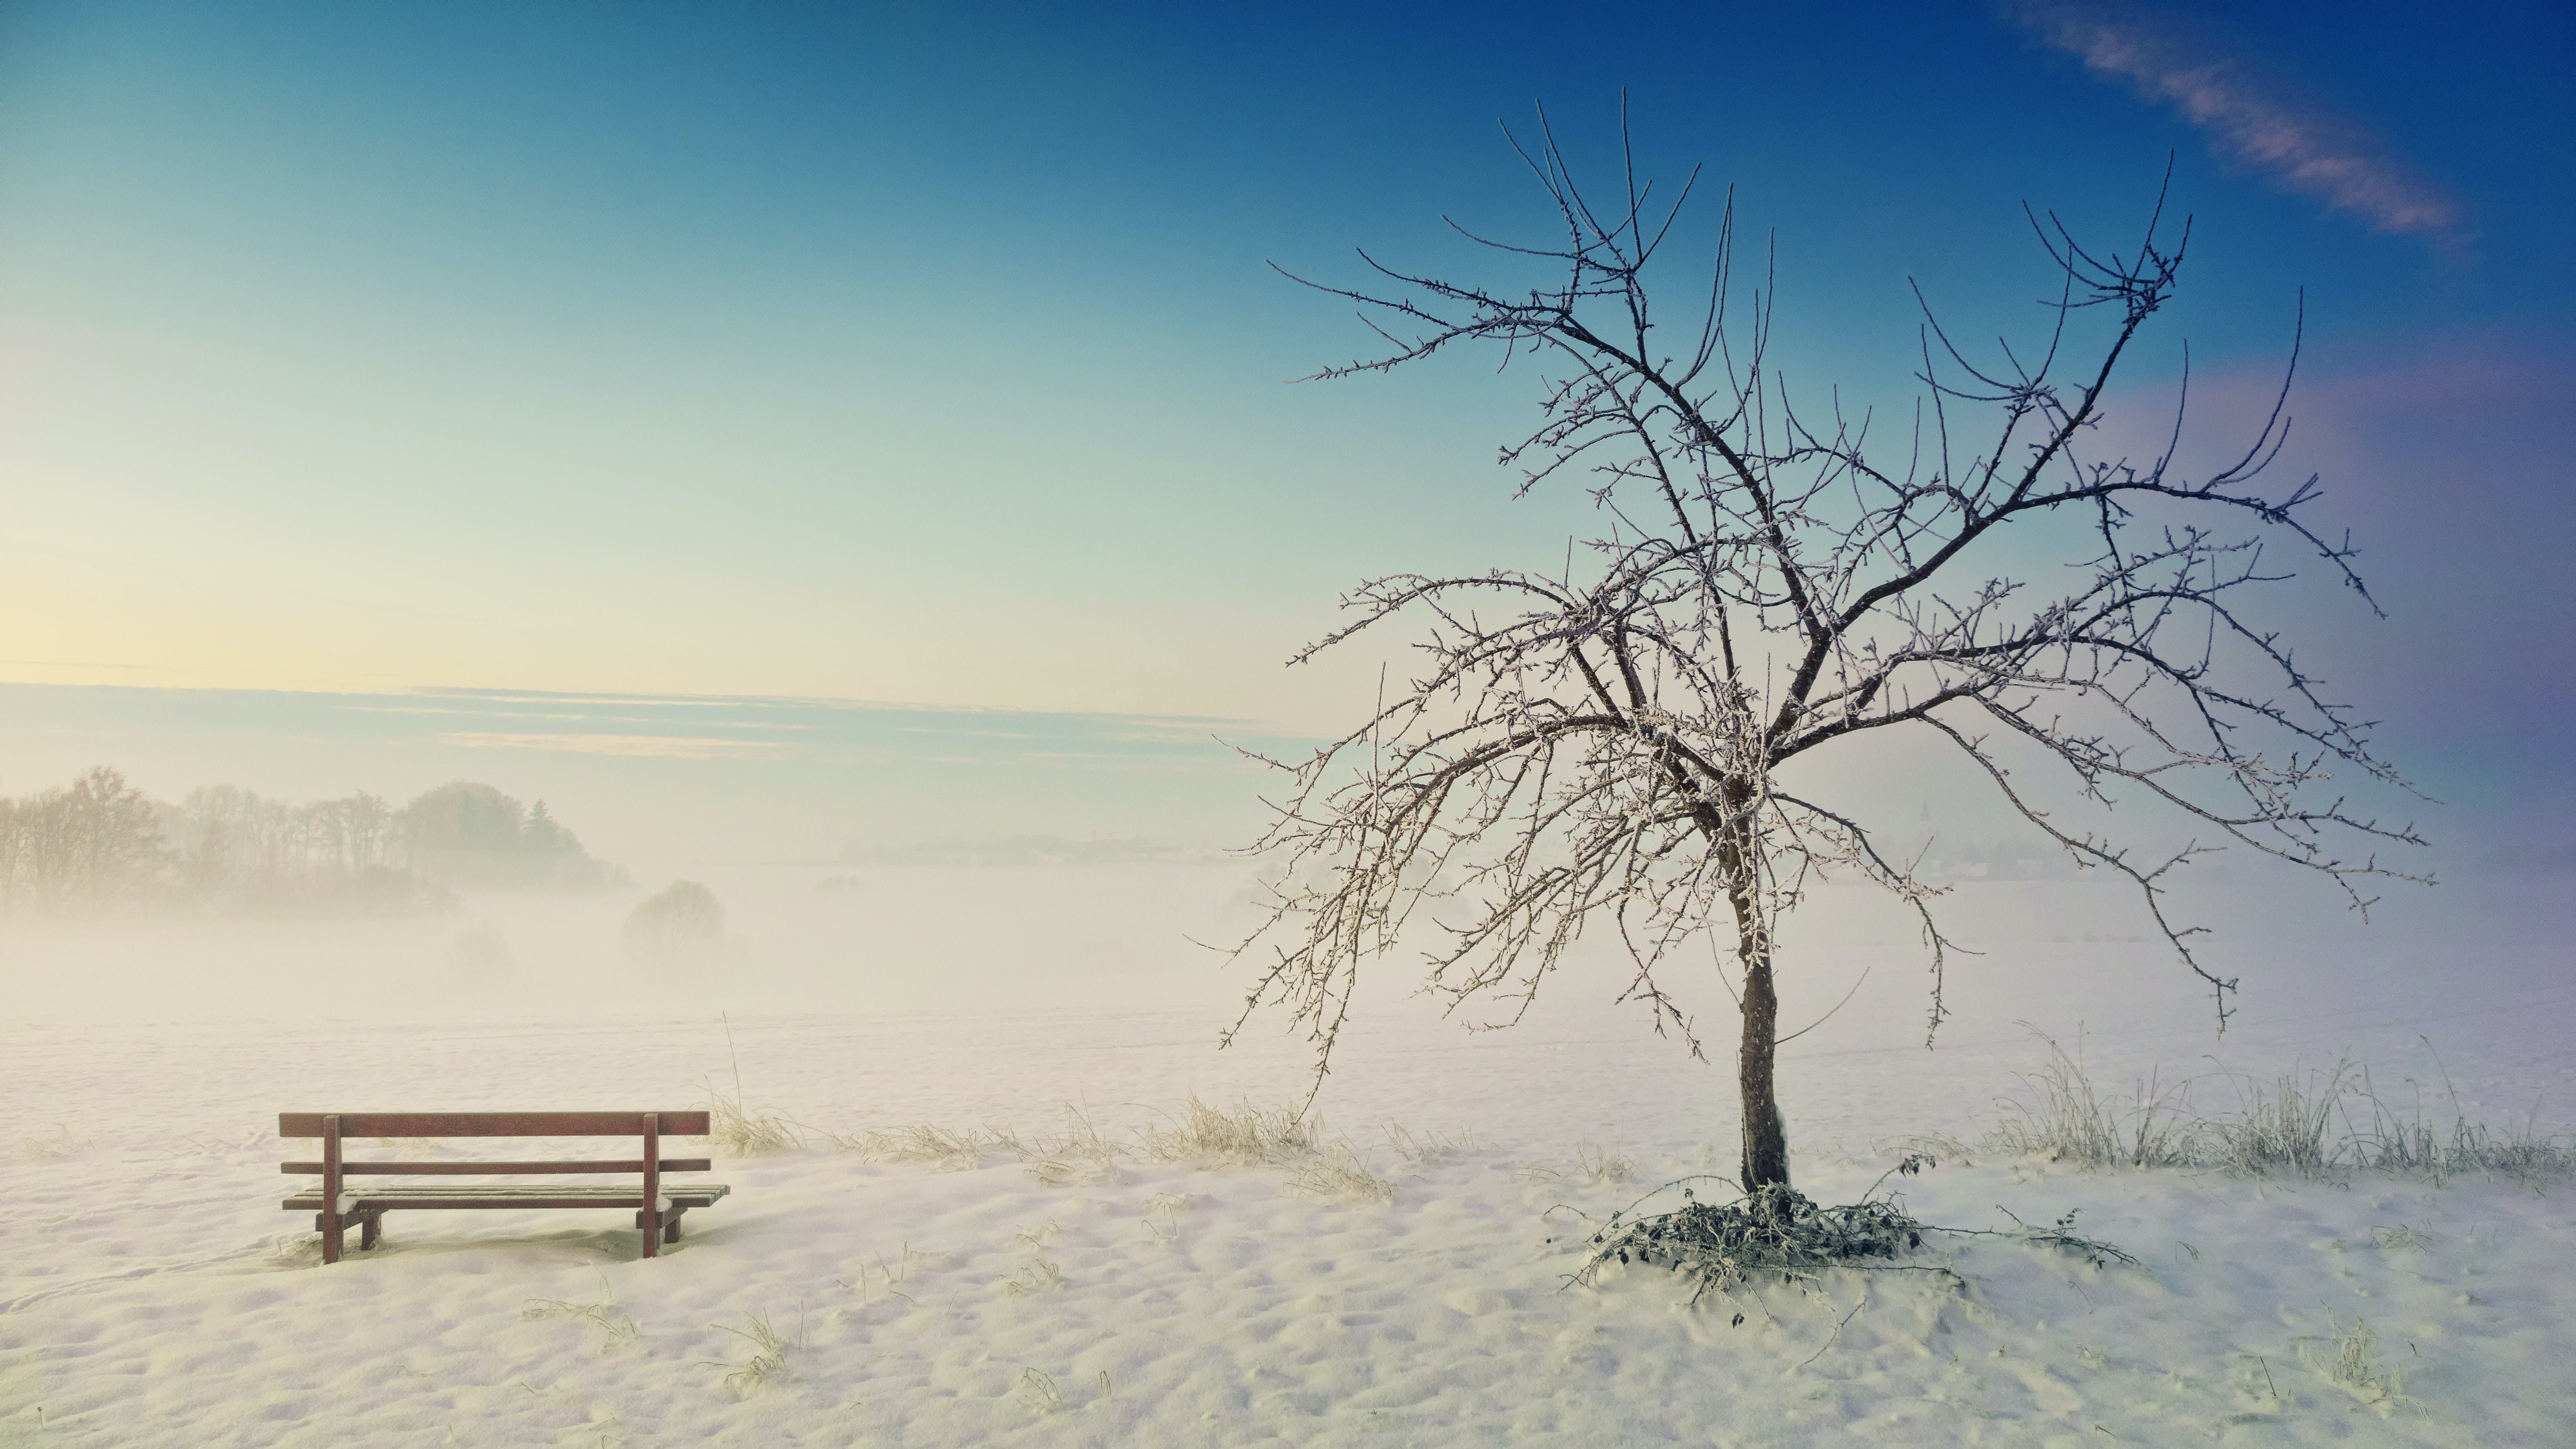 Photo of Withered Tree Near Bench on Snow